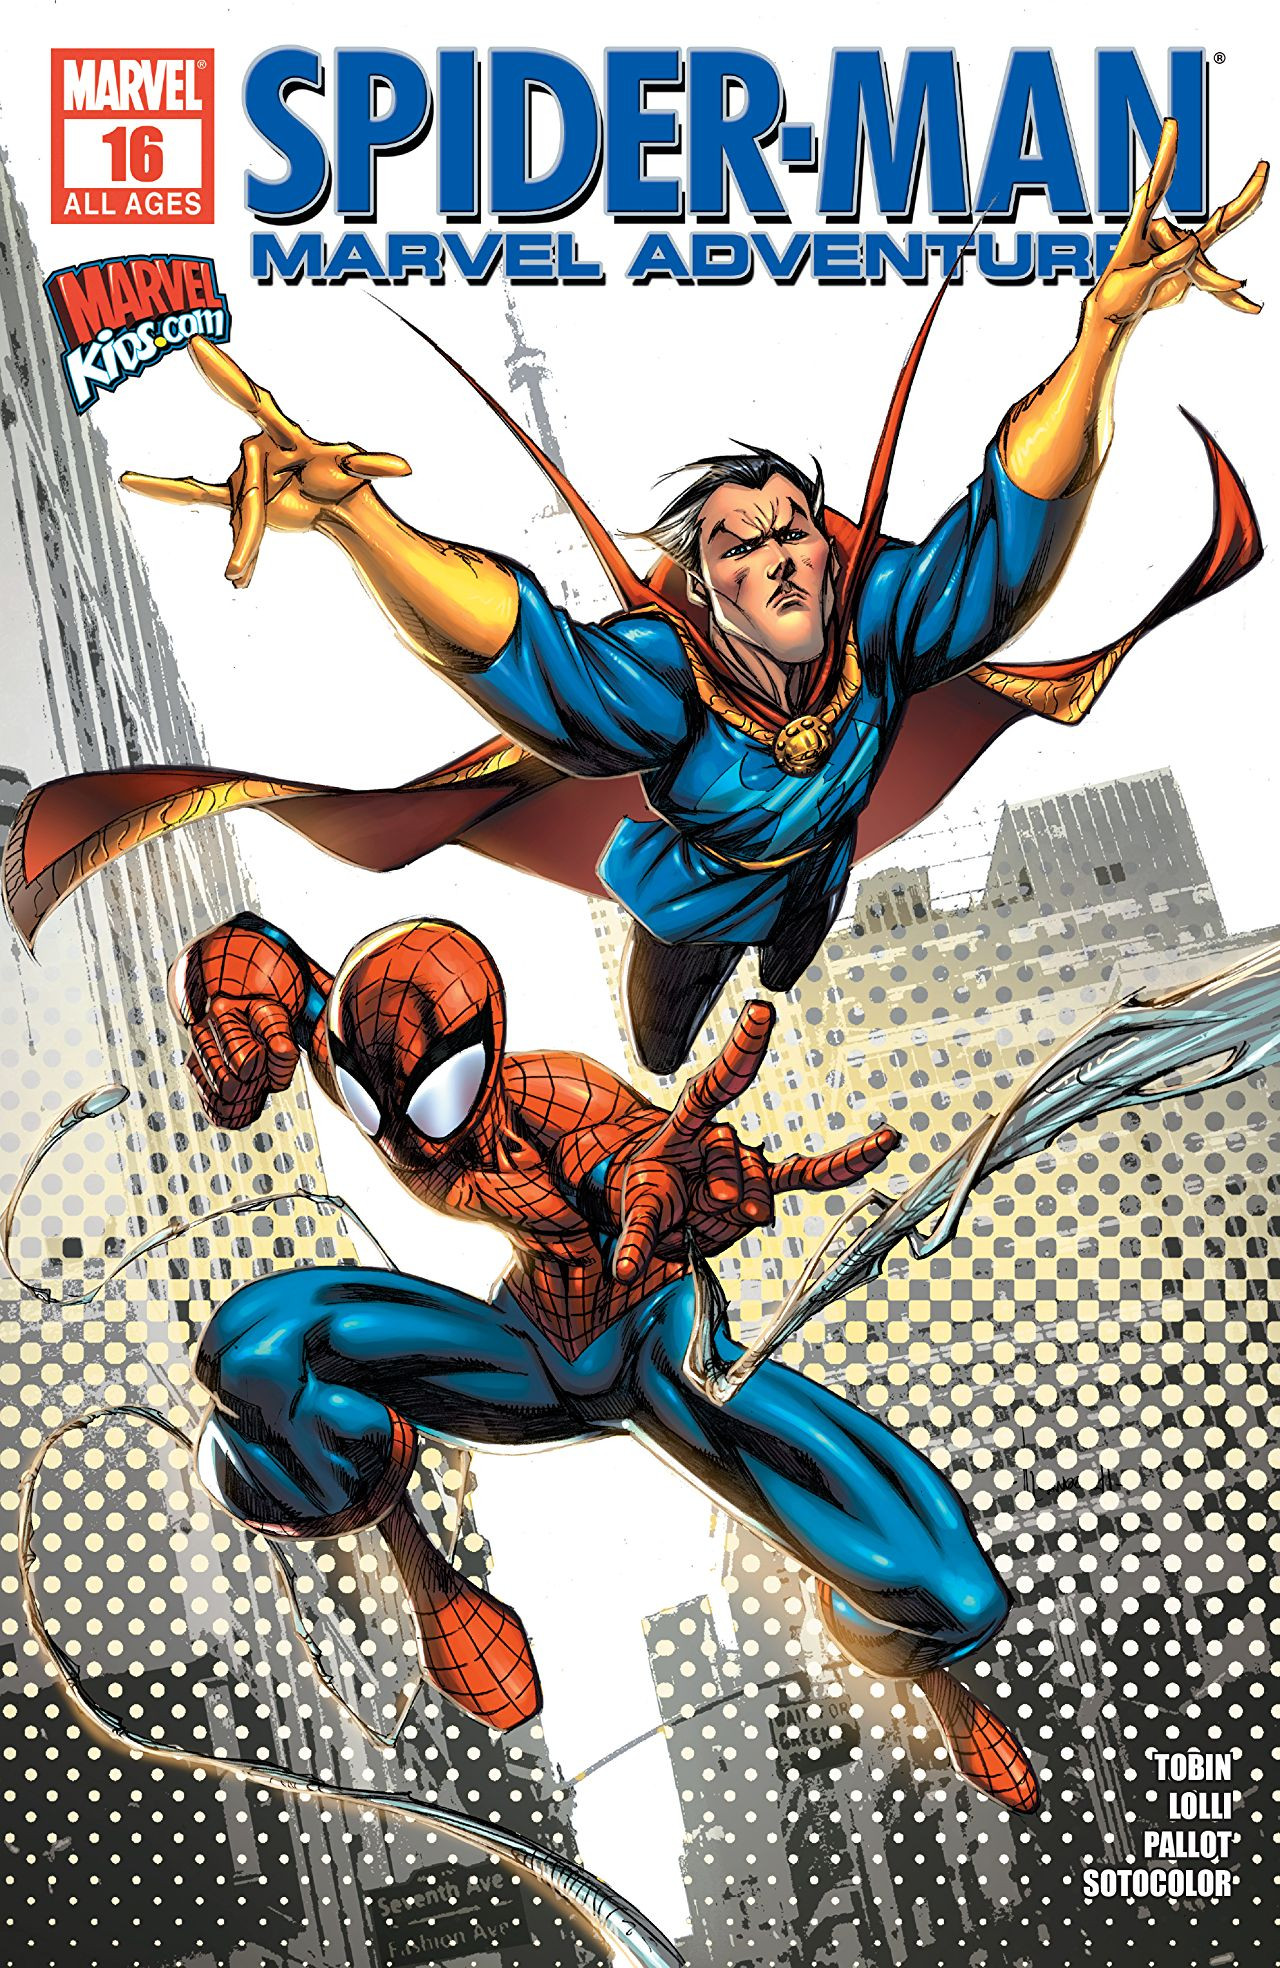 Marvel Adventures: Spider-Man Vol 2 16